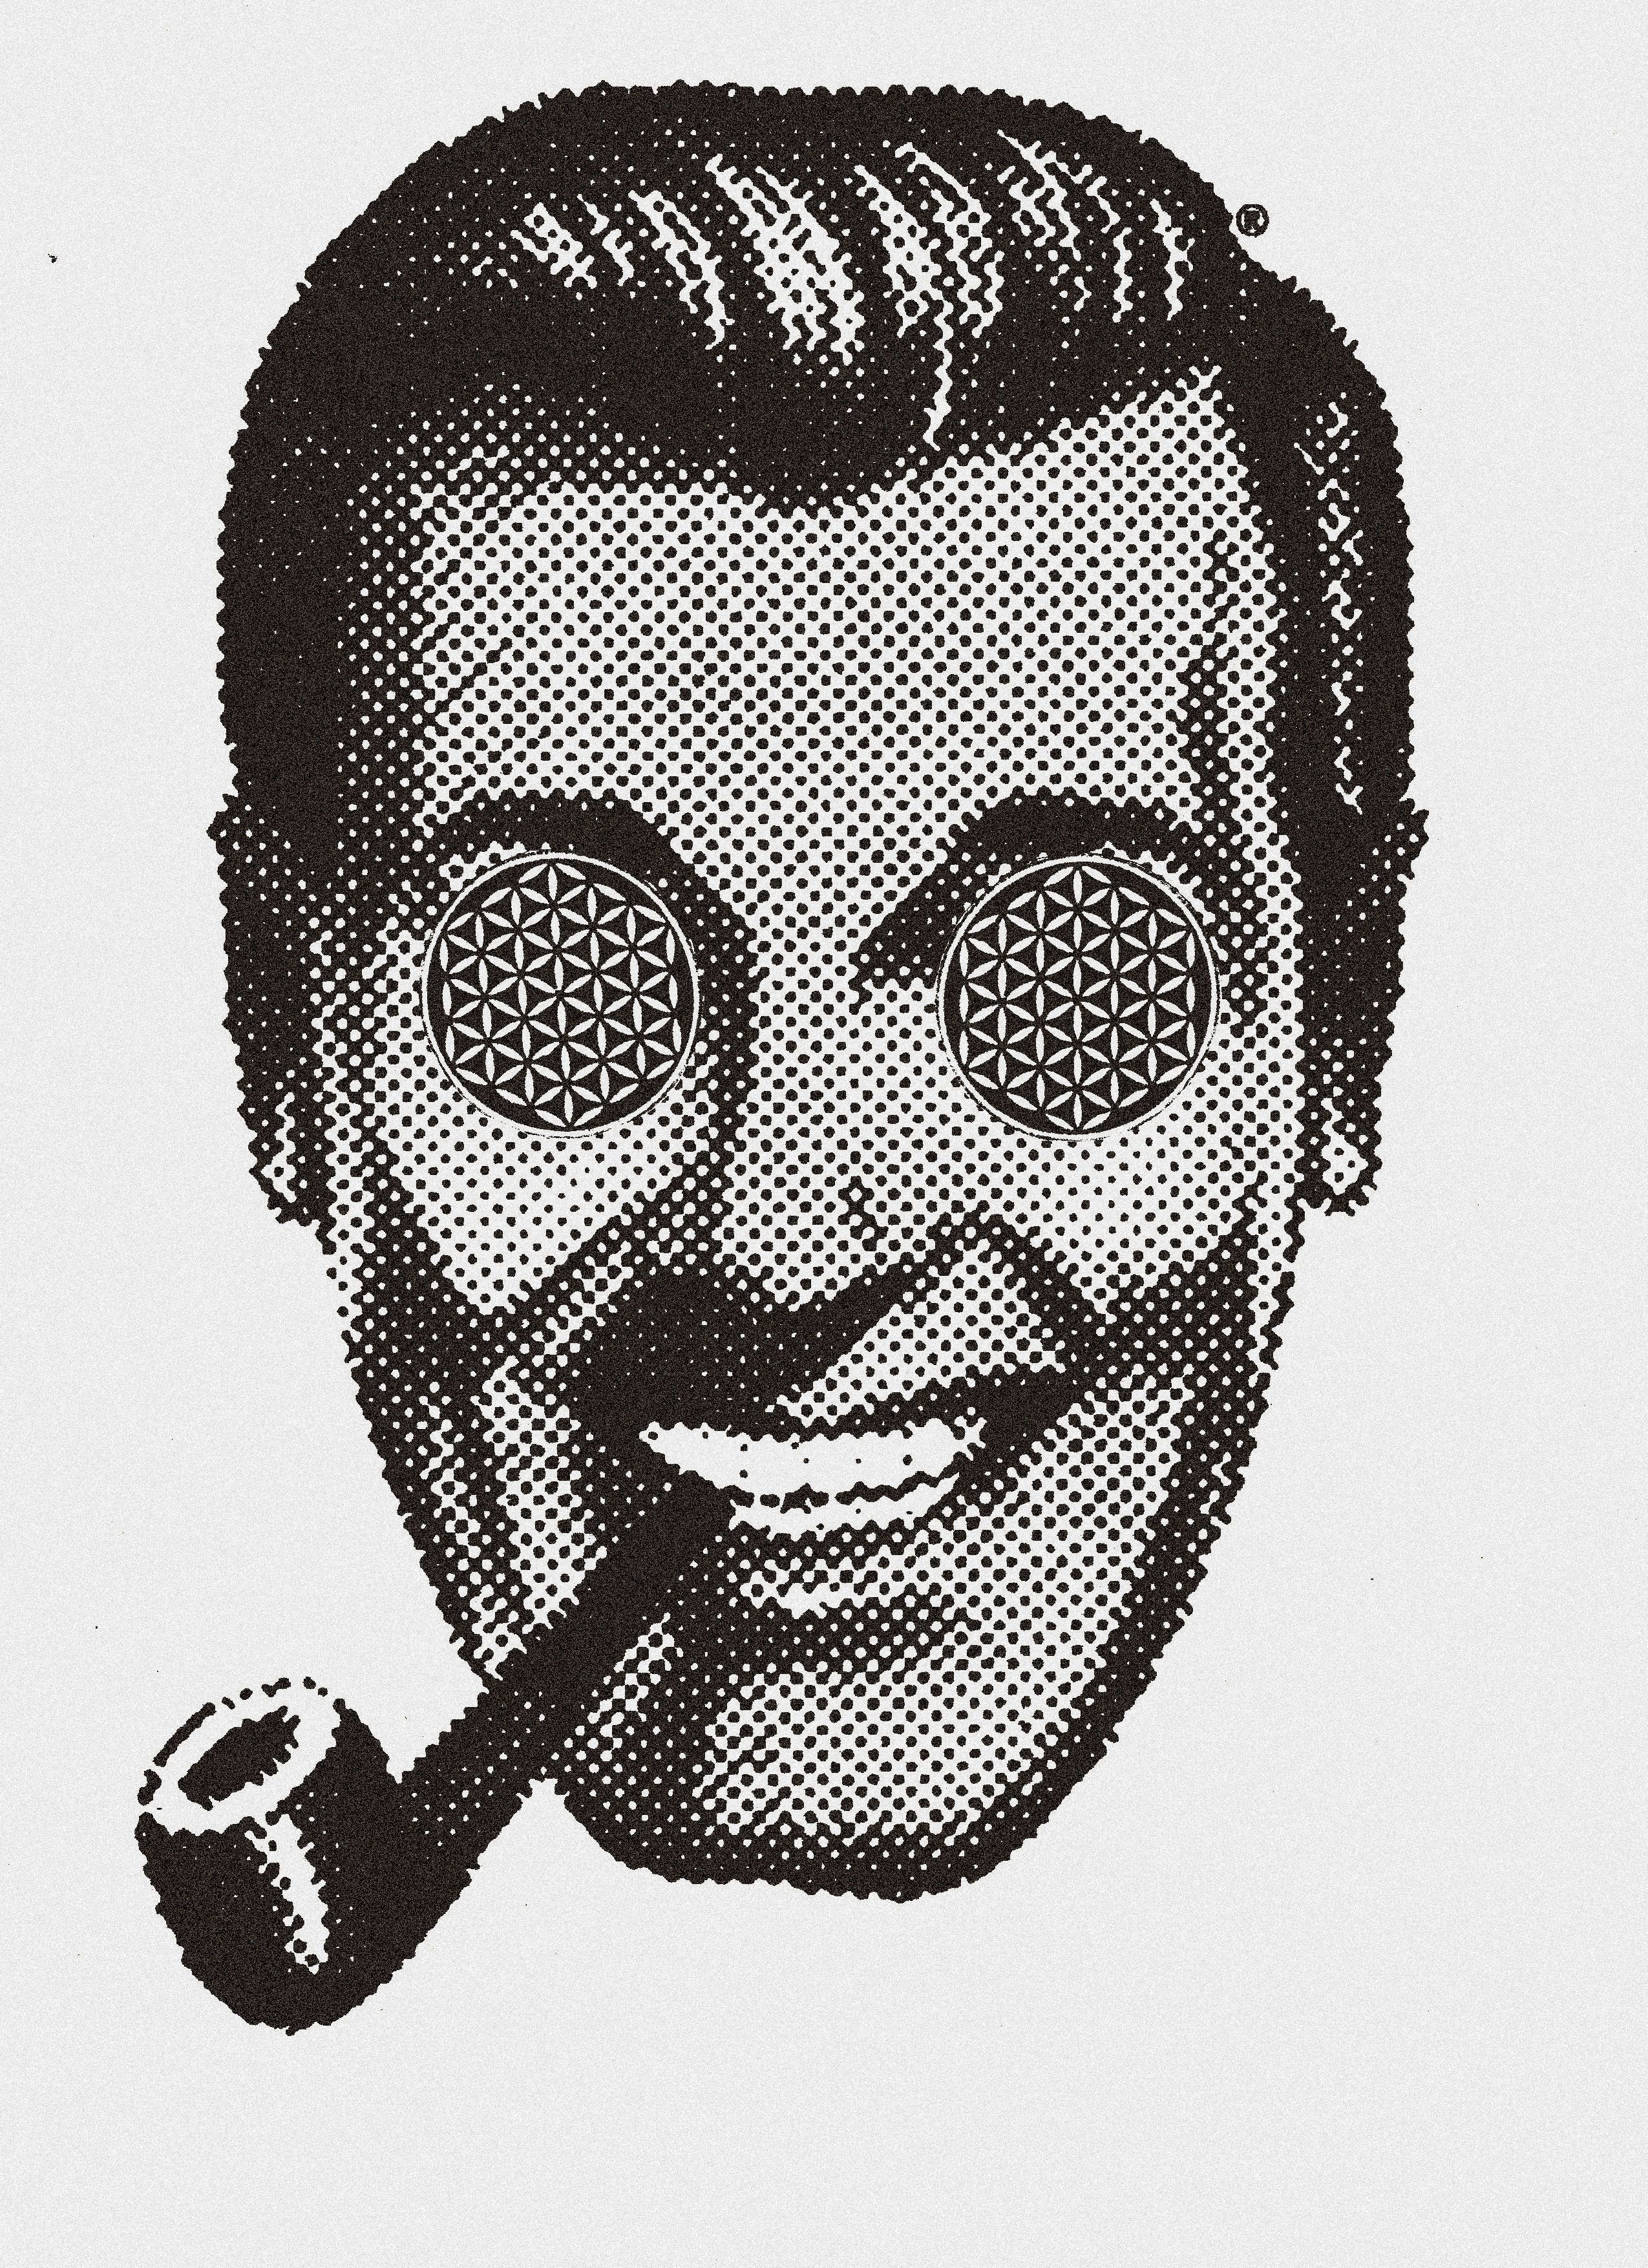 Subgenius clipart image black and white download Bob J.R. Dobbs and the Flower of Life | That Weird Stuff I ... image black and white download